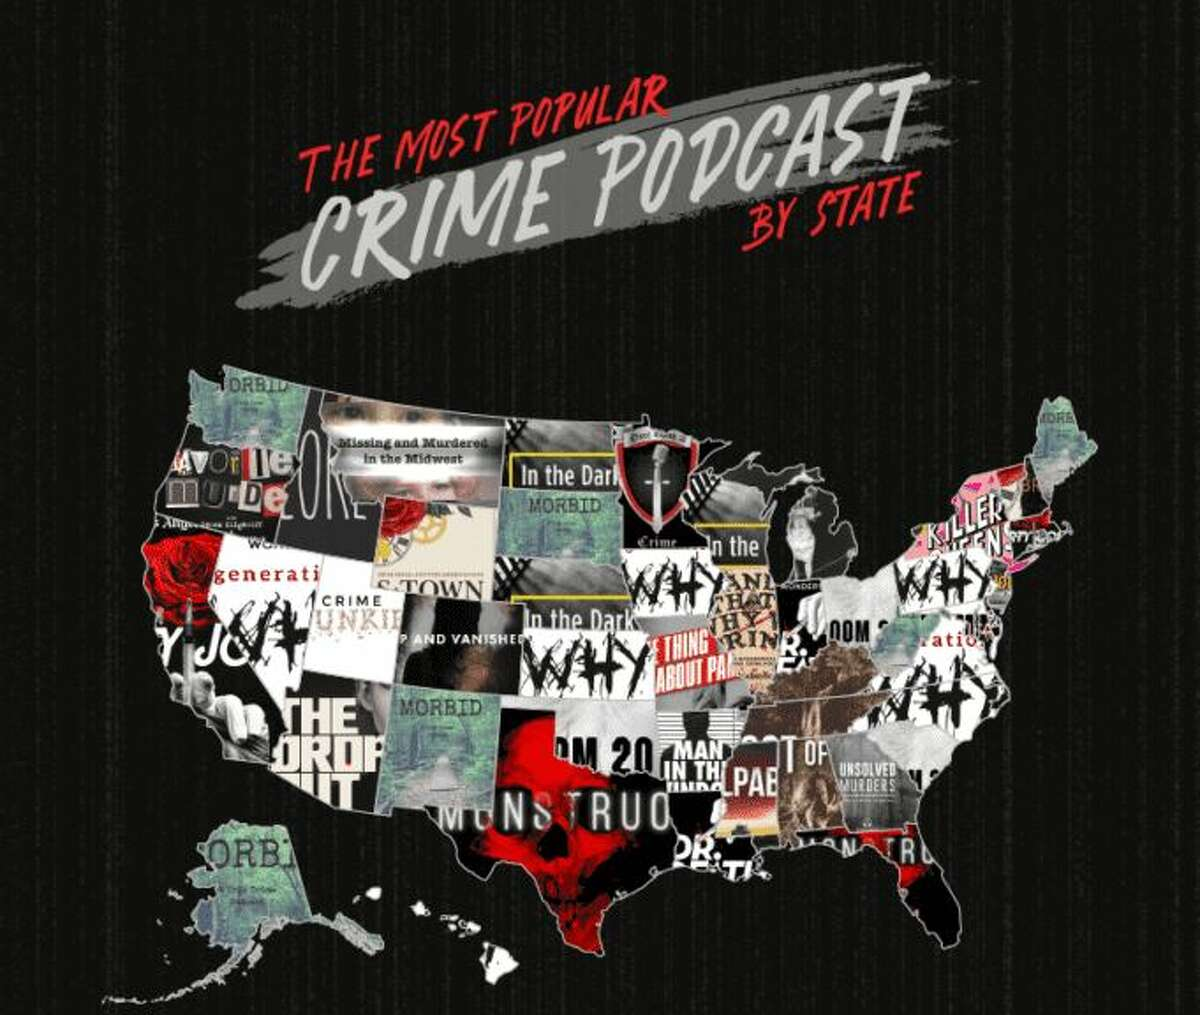 The Most Popular podcast by state. In Texas, the most popular true-crime podcast is Monstruo, which are chilling tales of real-life, haunting cases that will make you afraid of the dark.